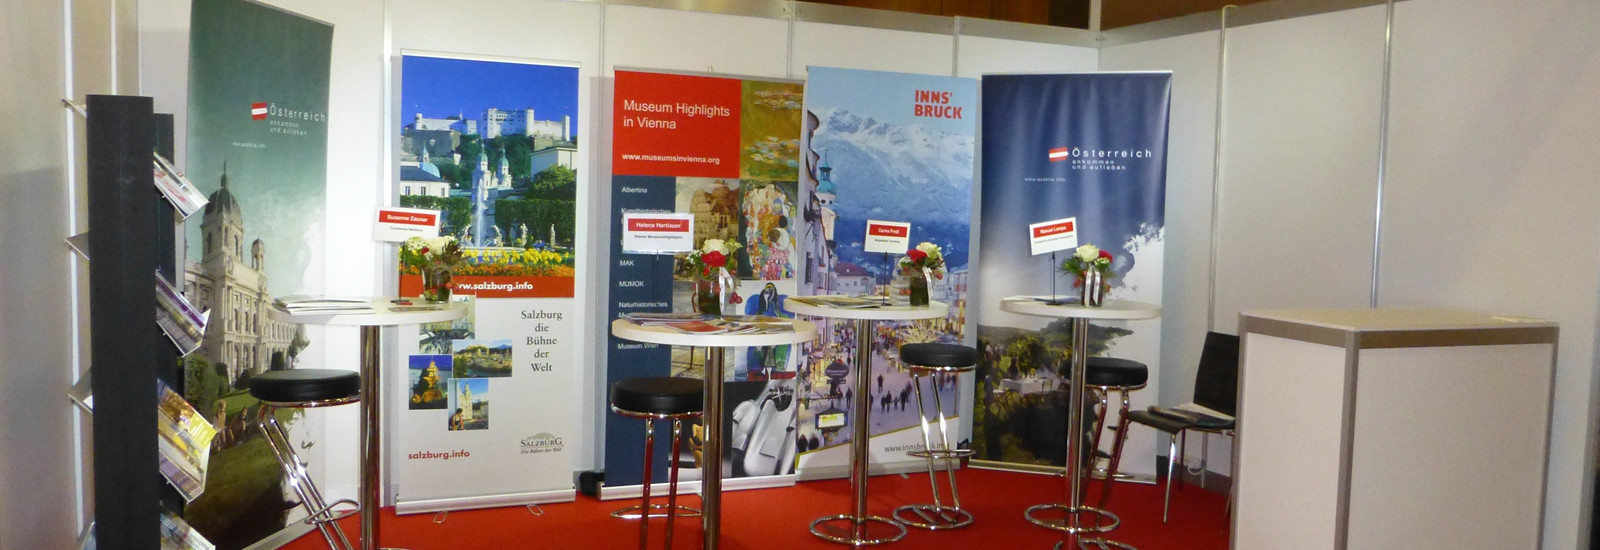 Messe-Stand